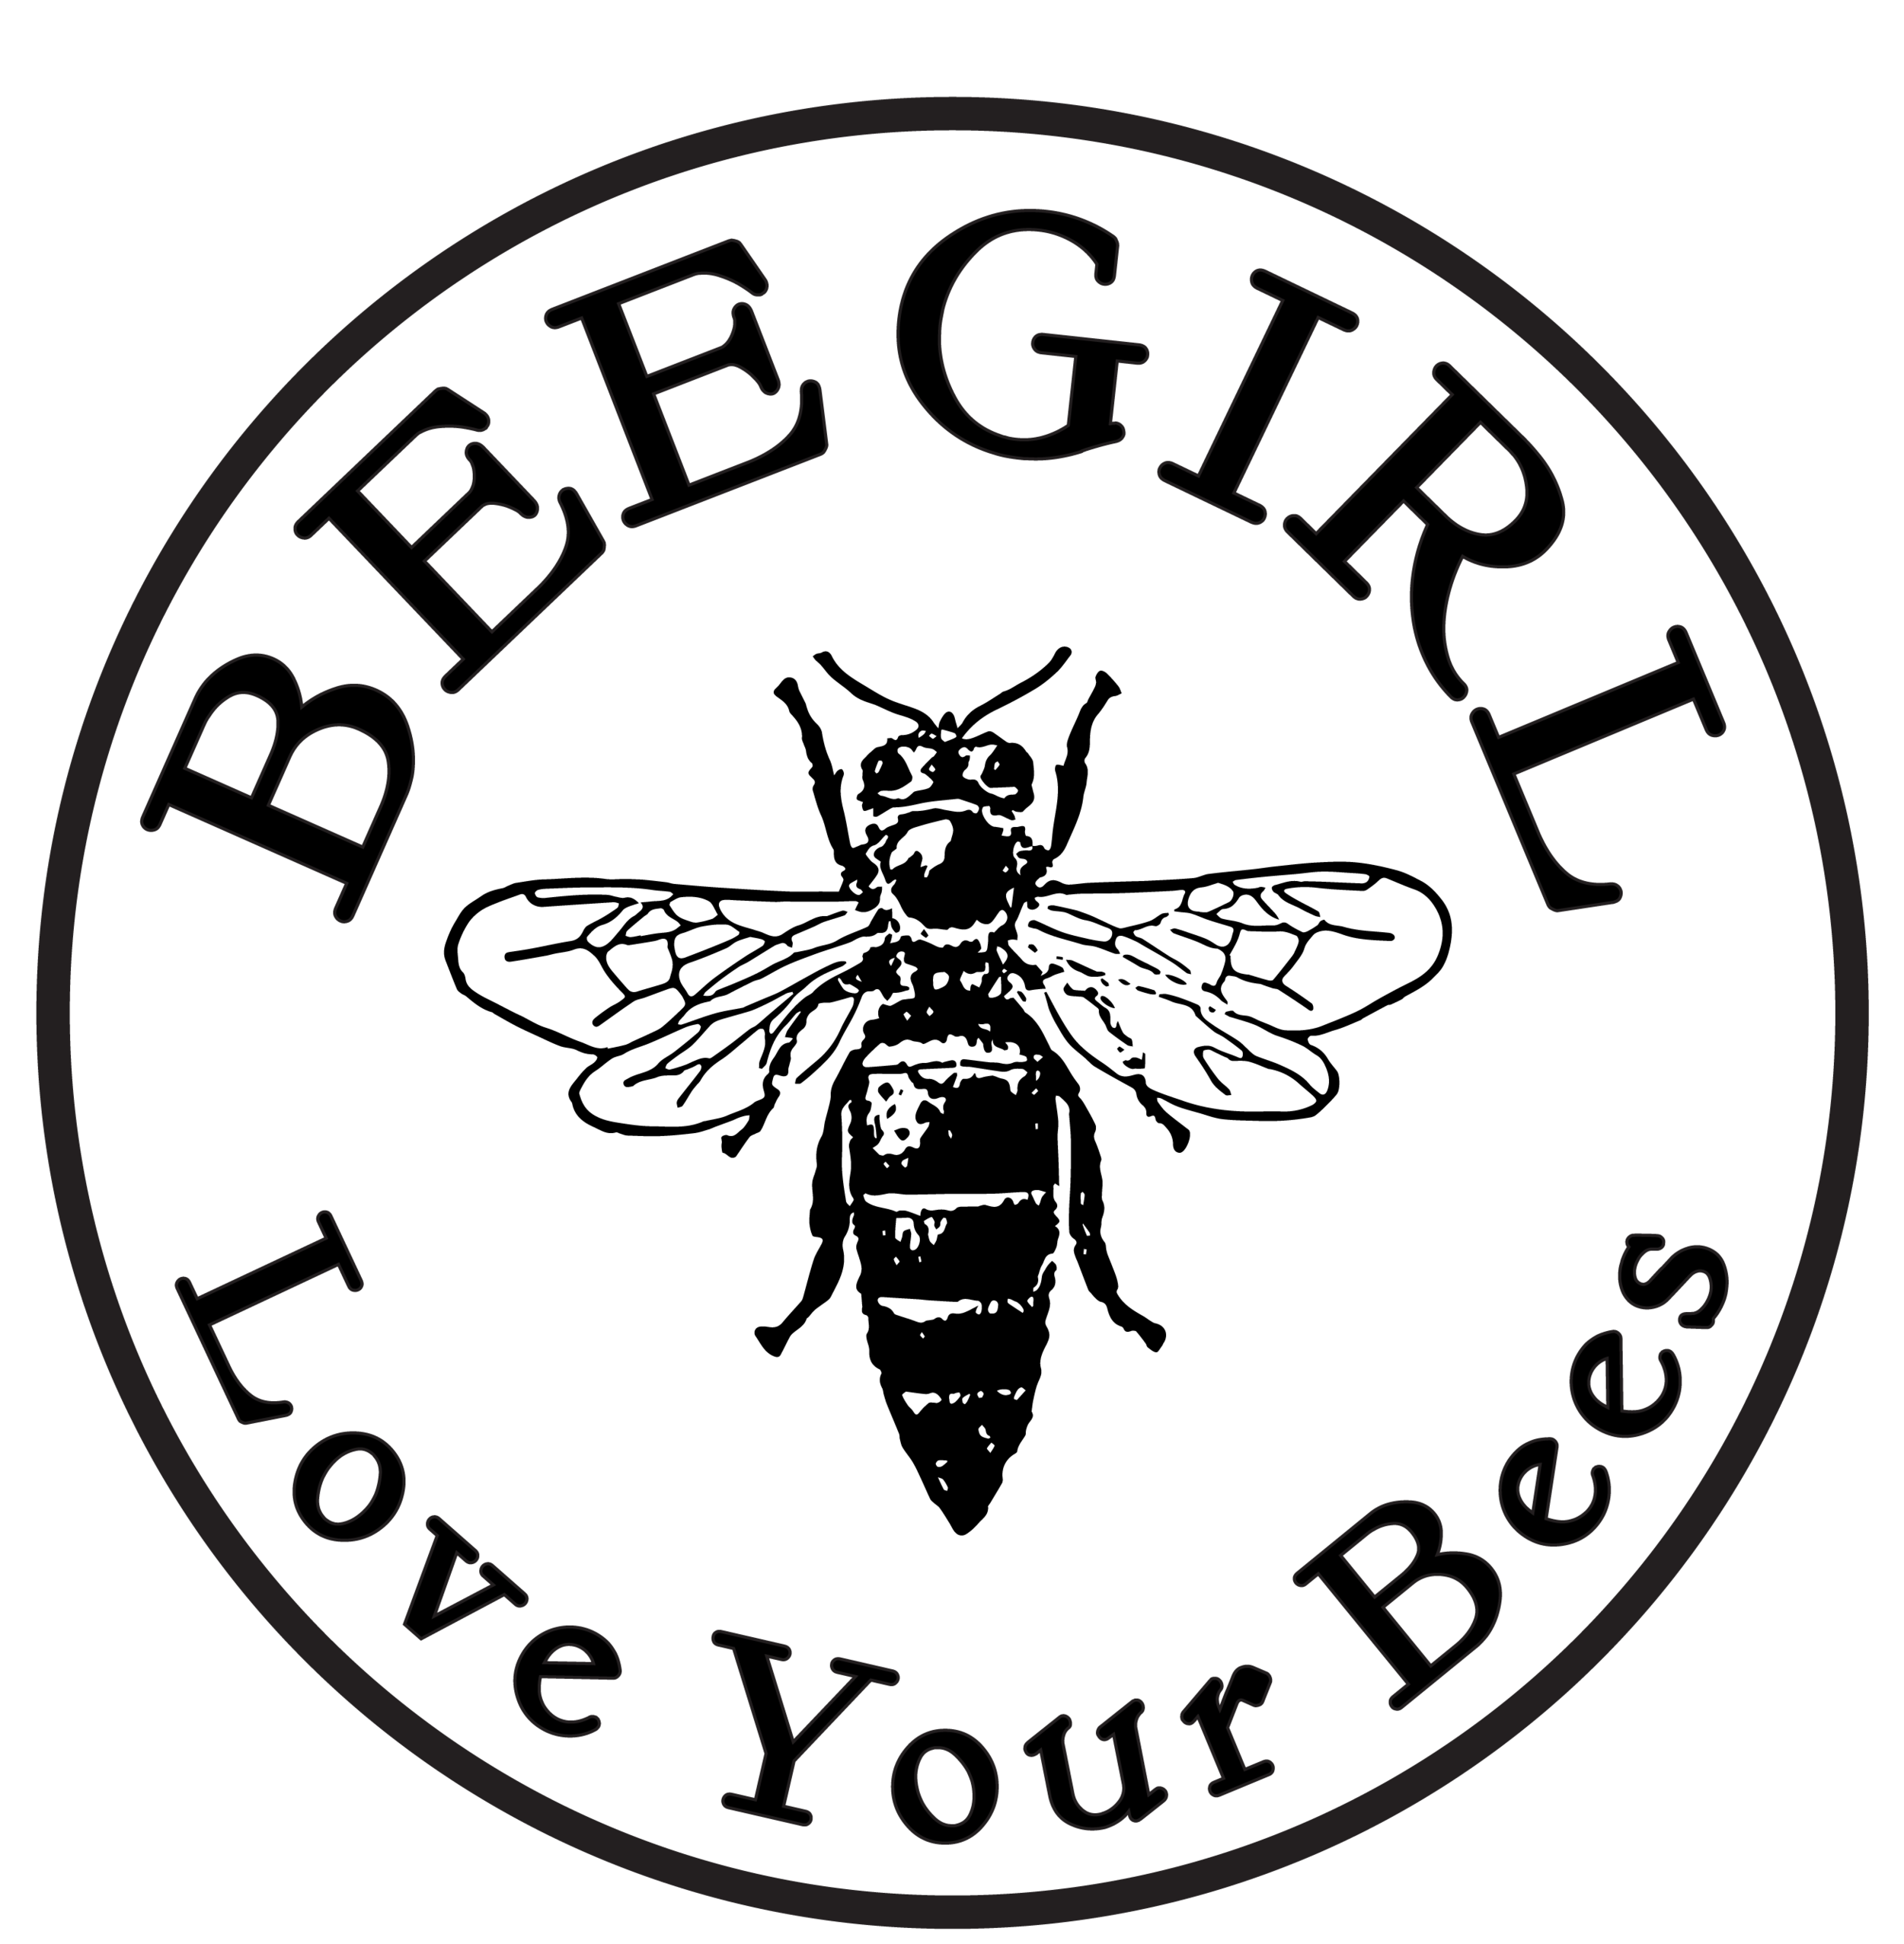 Click to download, and use for promotion of Bee Girl ( ™ ) or Bee Girl ( ™ ) collaborations with your organization. All other rights reserved.